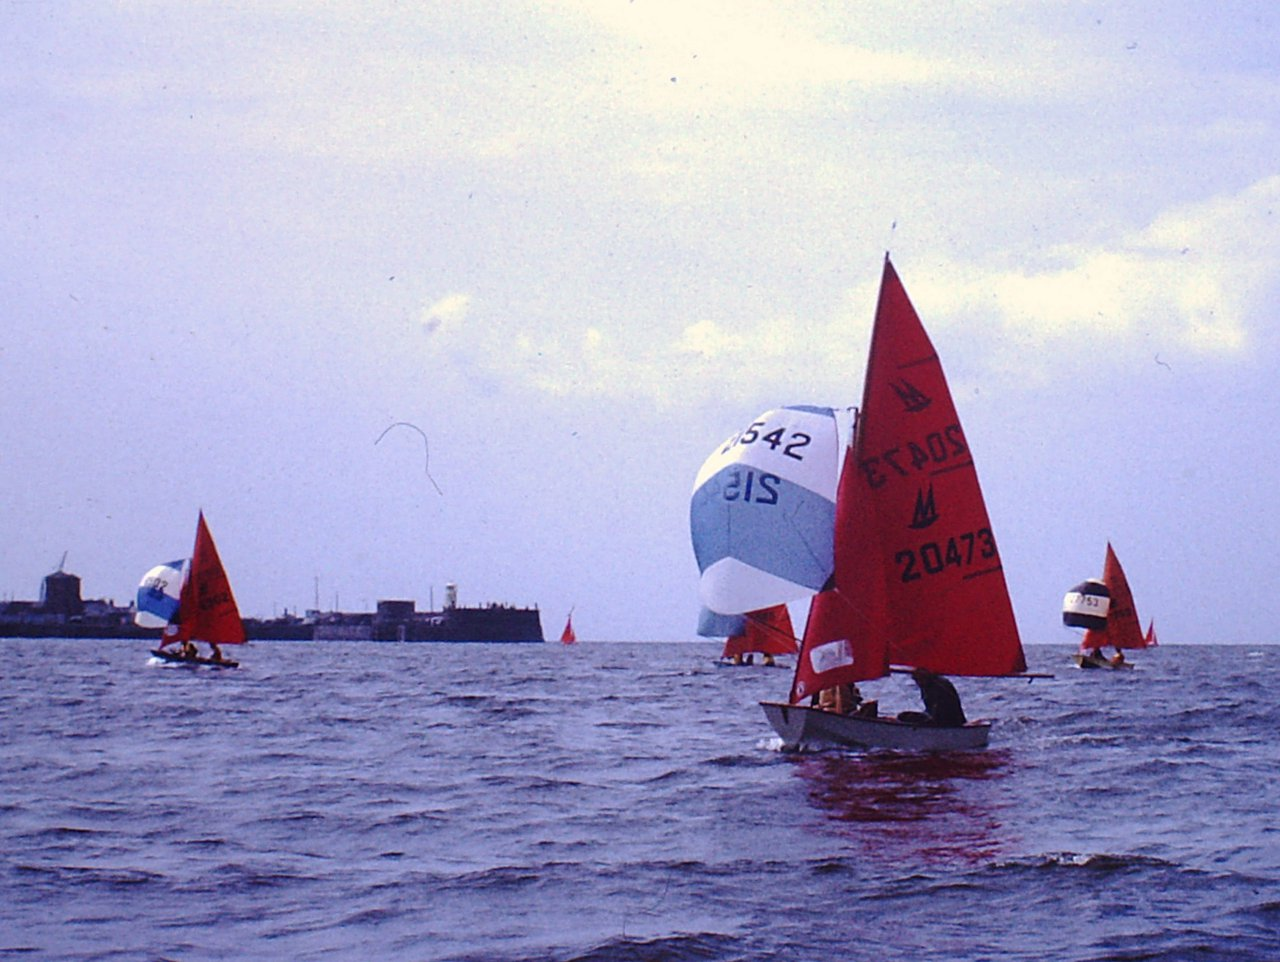 A fleet of Mirror dinghies running down to finish a race